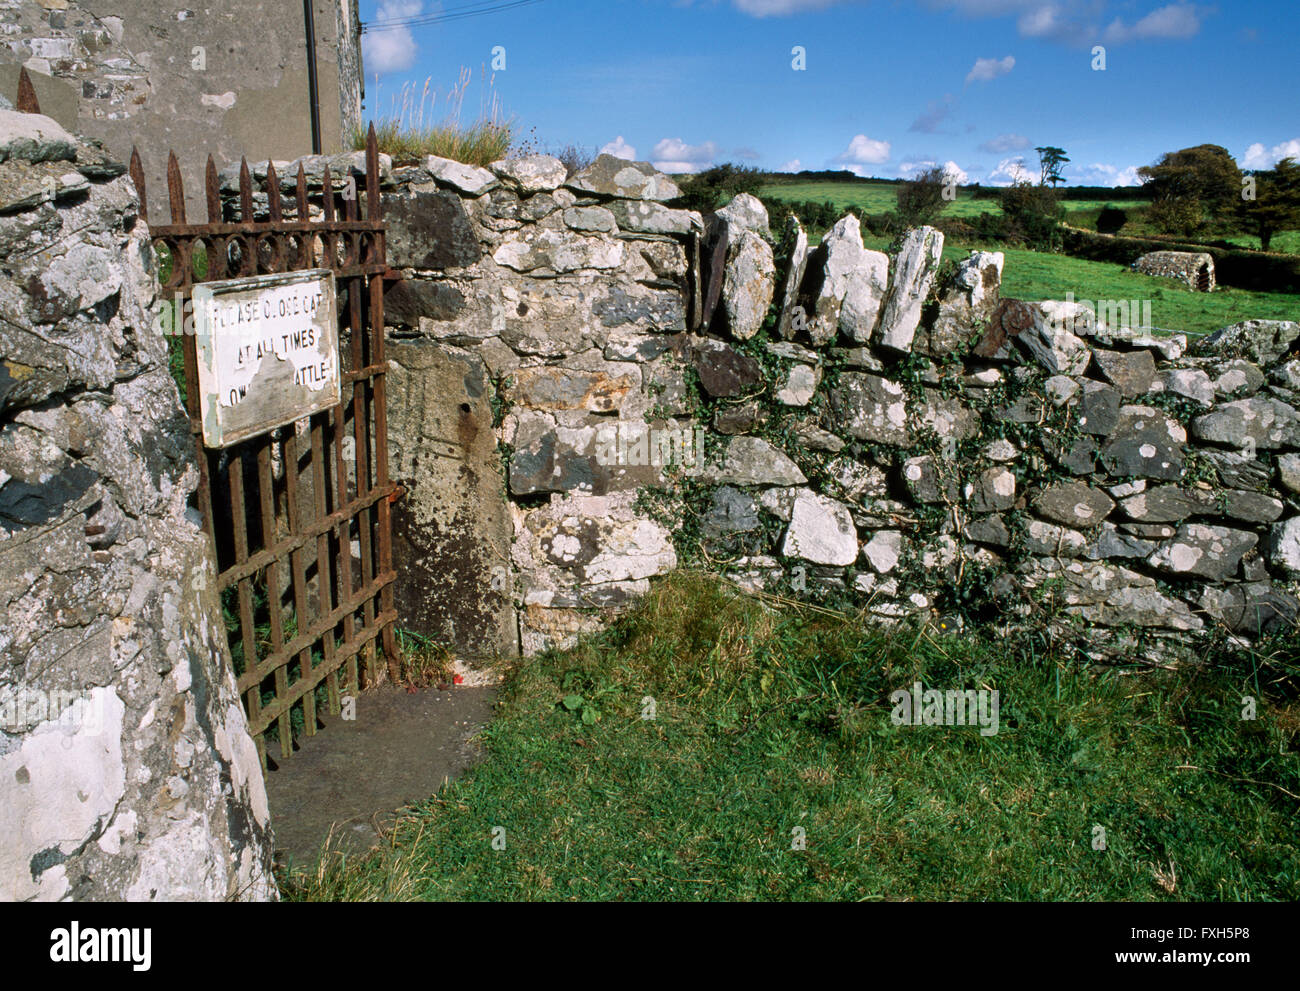 An C8th cross-inscribed stone reused as a gatepost at Llanllawer church in the Gwaun Valley SE of Fishguard, Pembrokeshire. - Stock Image